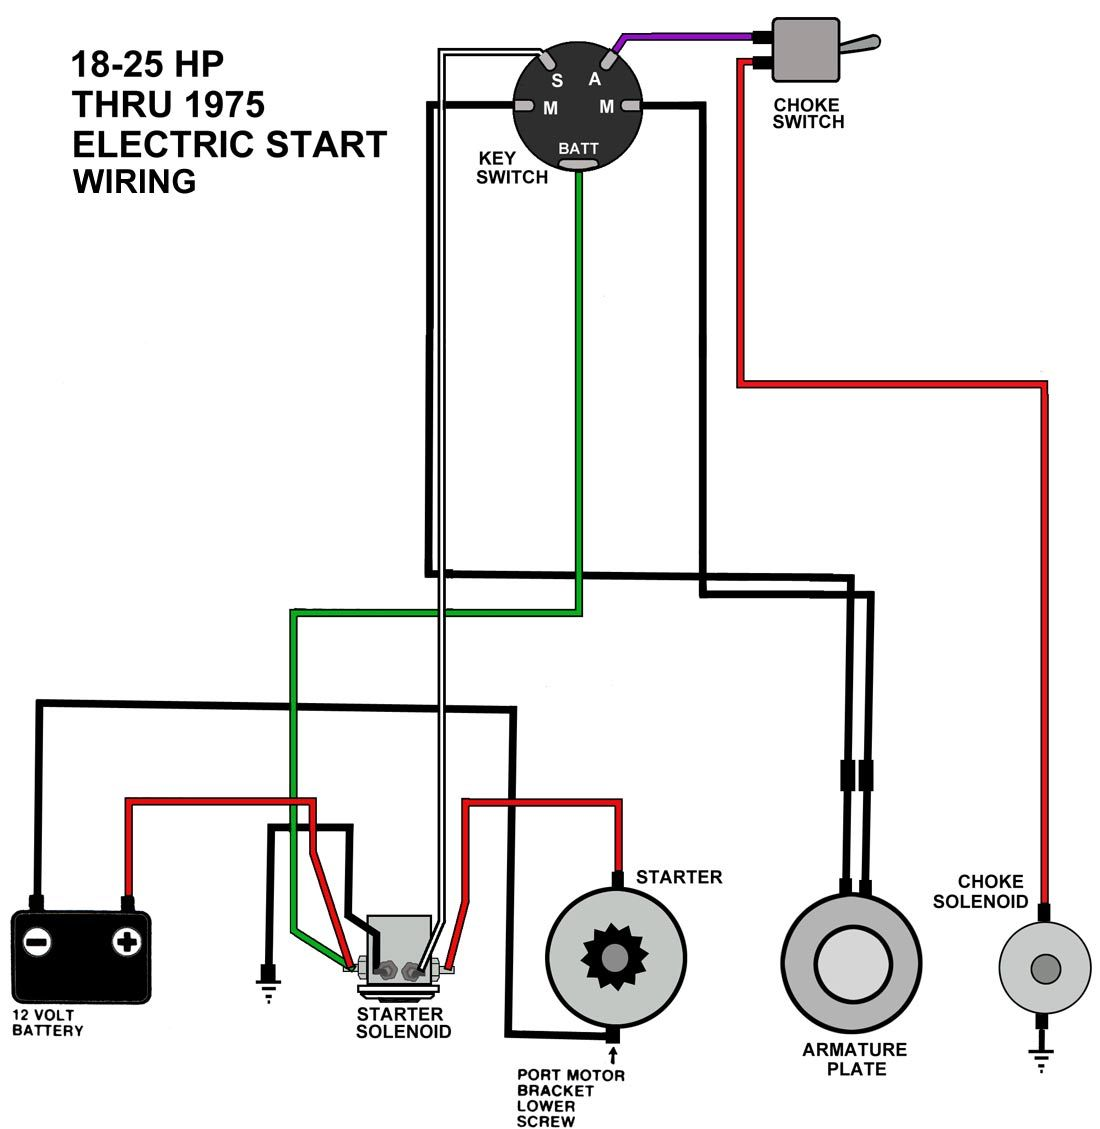 Yanmar Solenoid Wiring Diagram Wiring in 2020 | Boat wiring, Kill switch,  Trailer wiring diagramPinterest